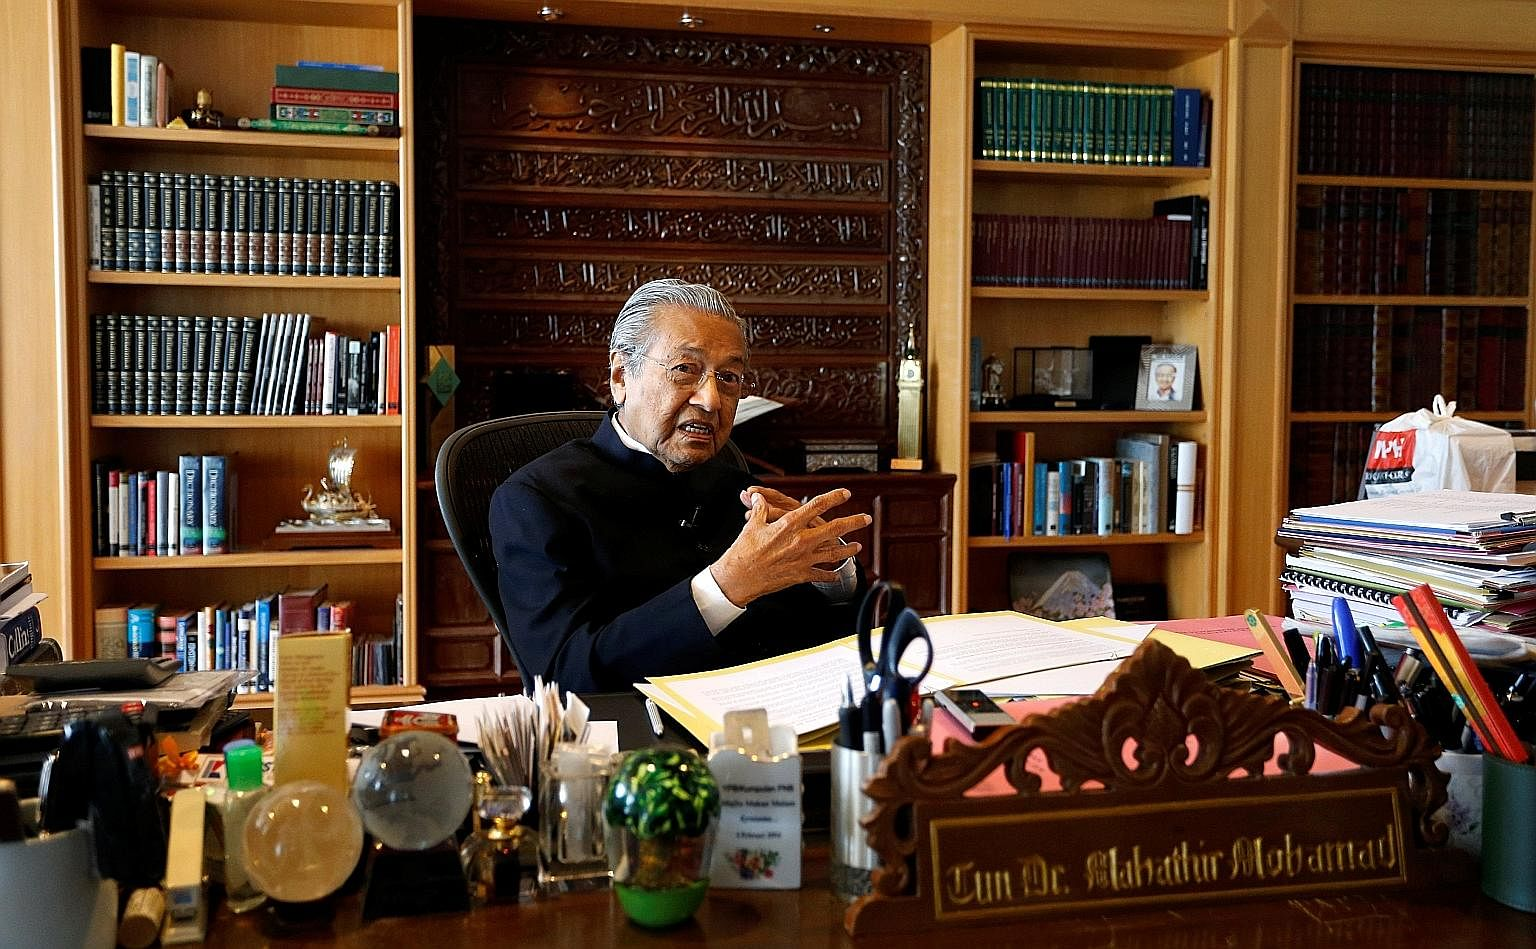 Tun Dr Mahathir Mohamad's problem has always been his inability to let go. The former prime minister has given the impression that only he has exacting standards, therefore, he has to be left to run the show.